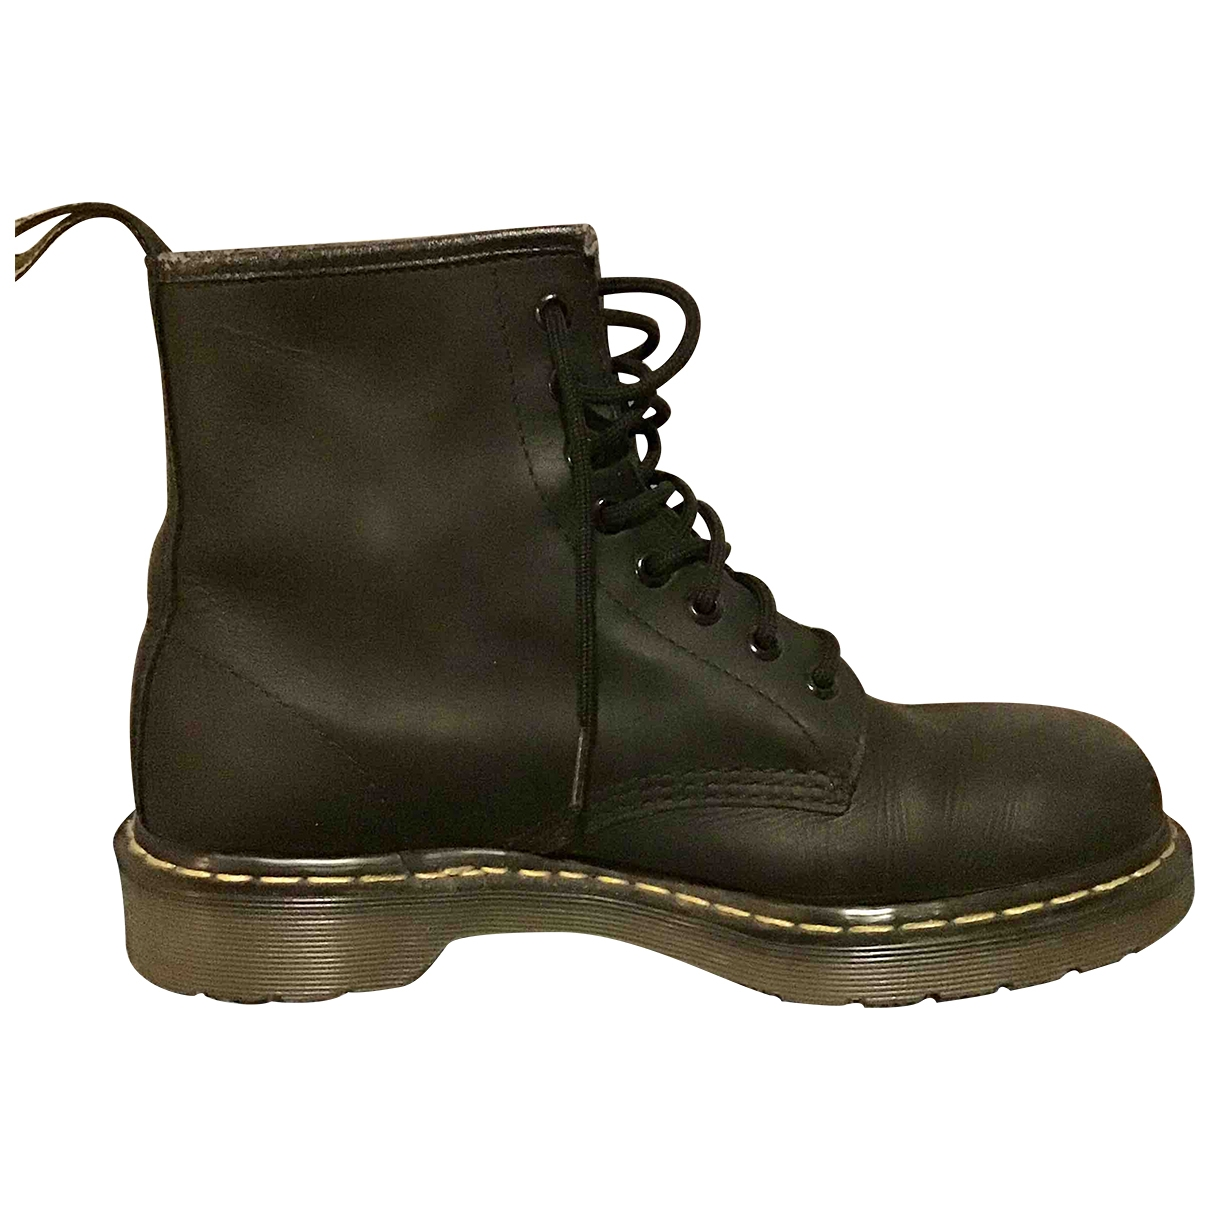 Dr. Martens 1460 Pascal (8 eye) Black Leather Ankle boots for Women 42 EU